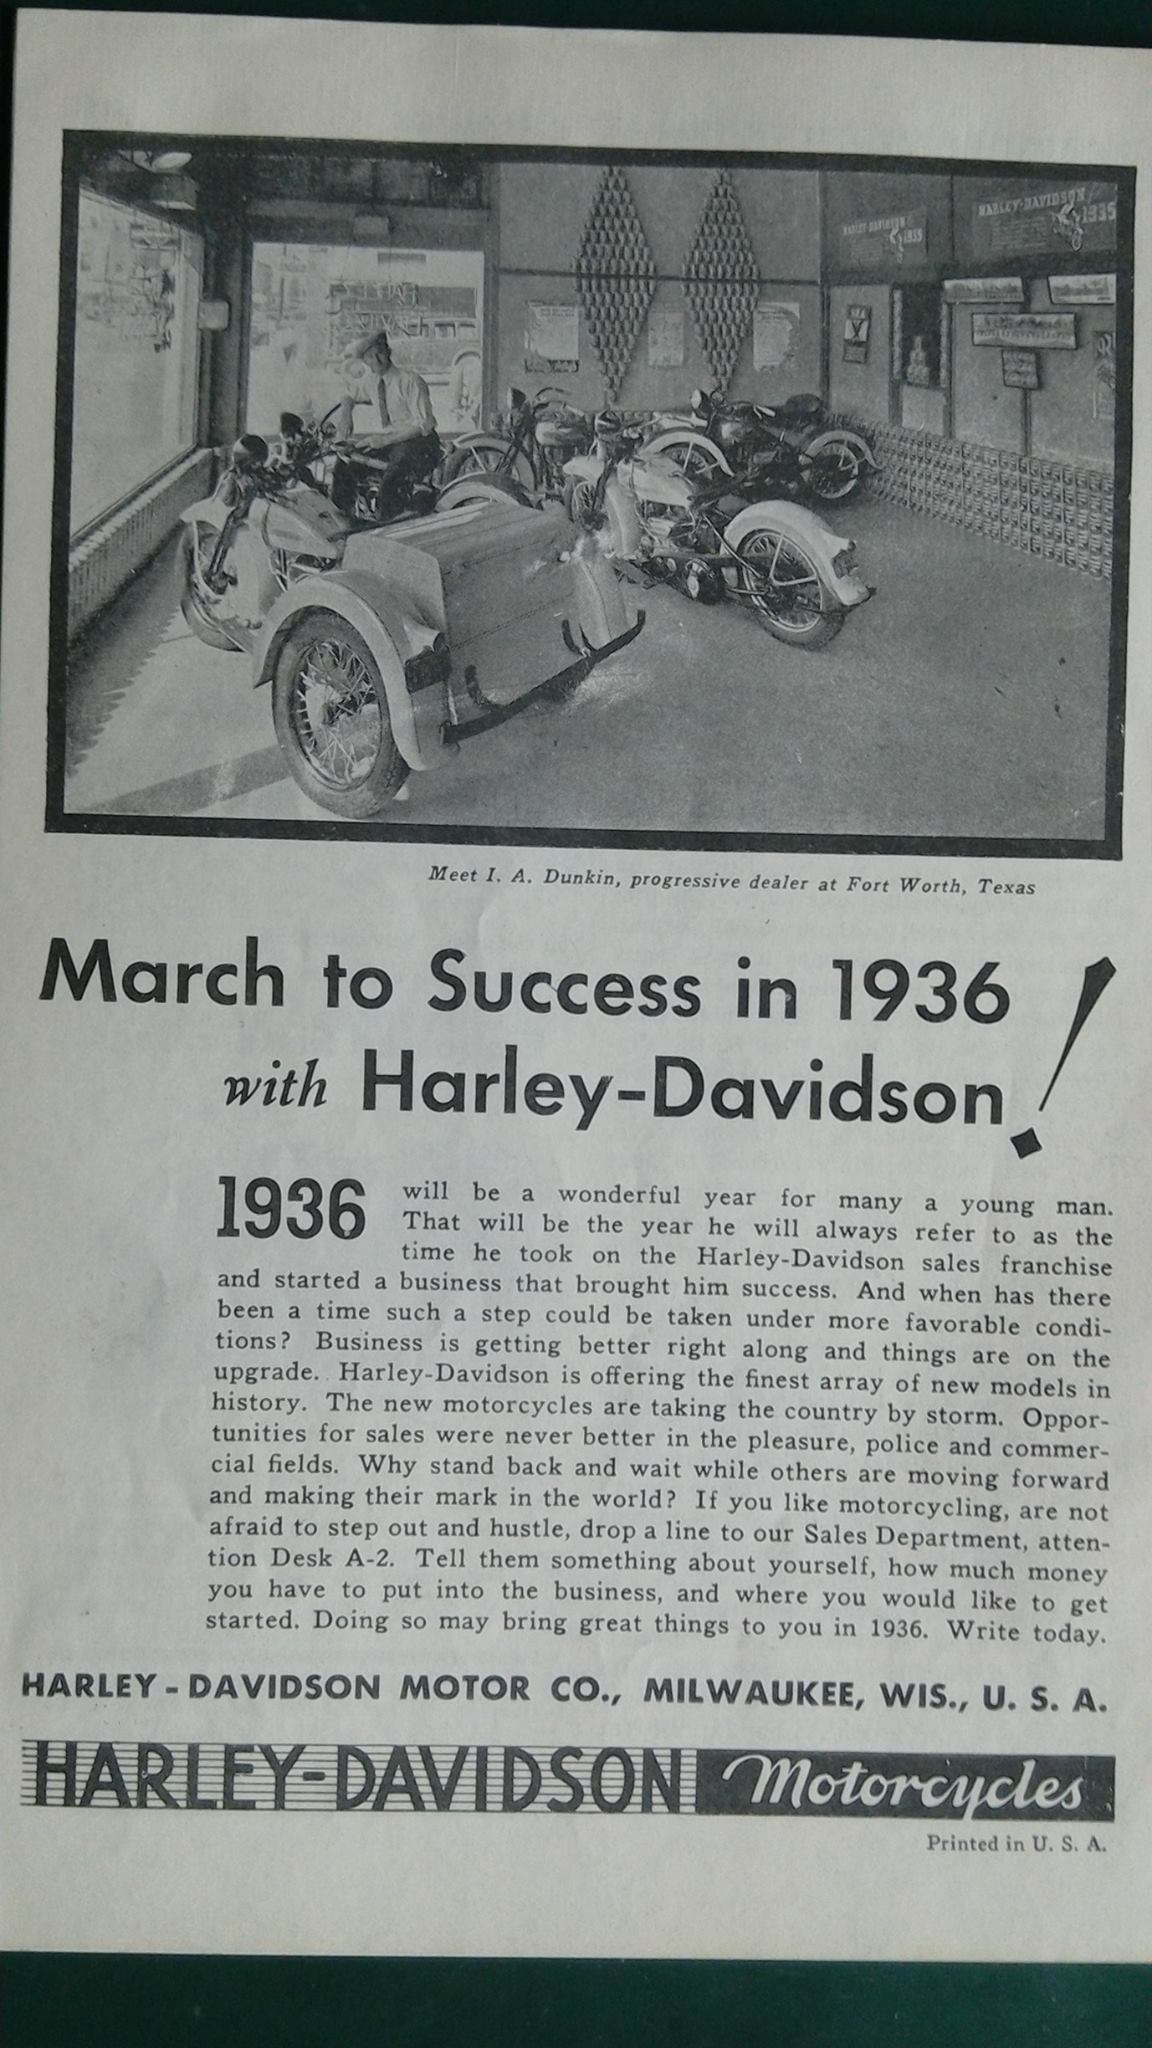 March to success in 1936